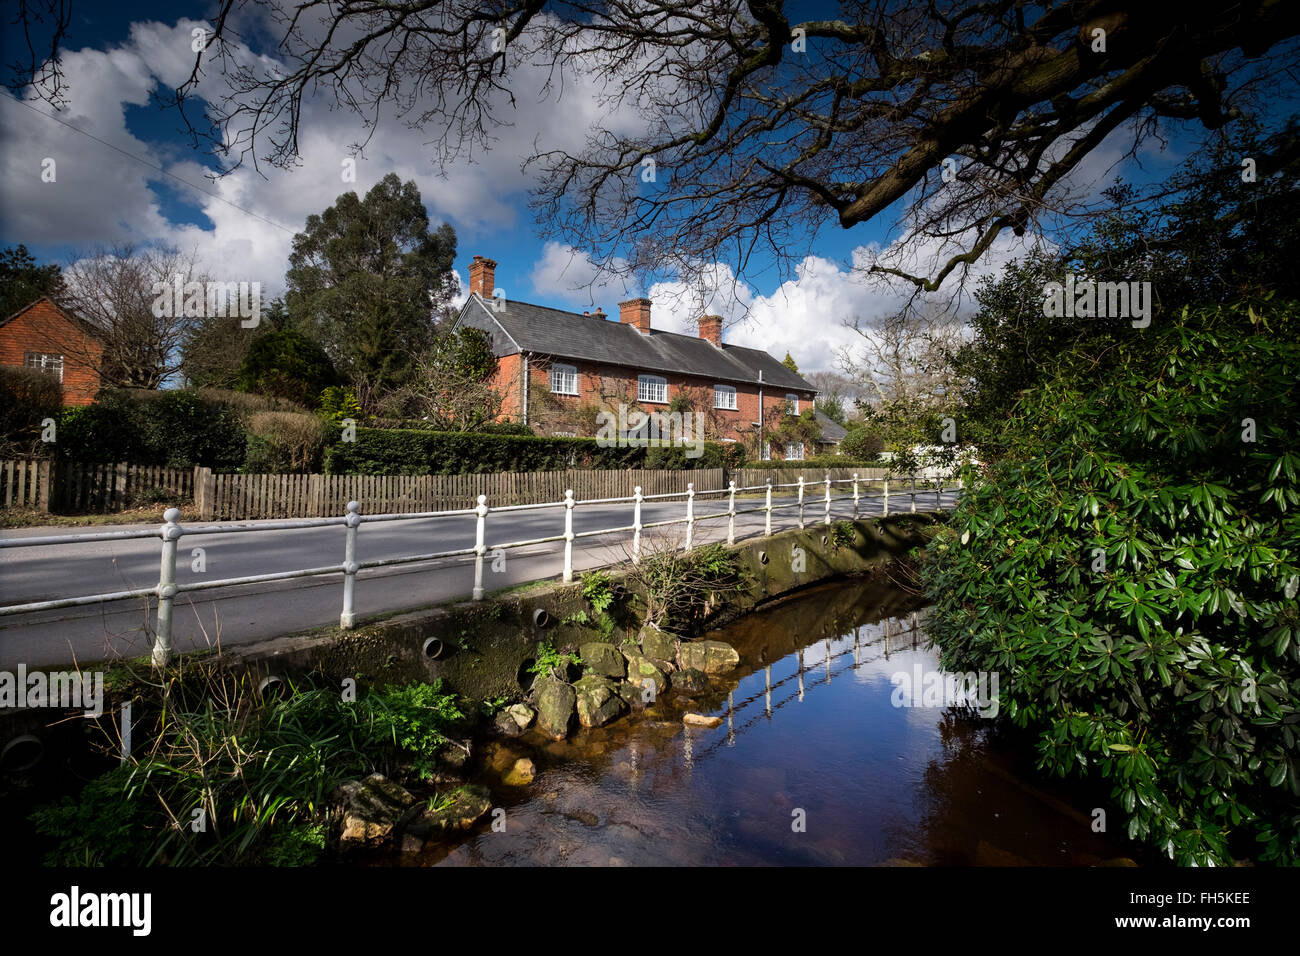 Brockenhurst village in the New Forest Hampshire - Stock Image